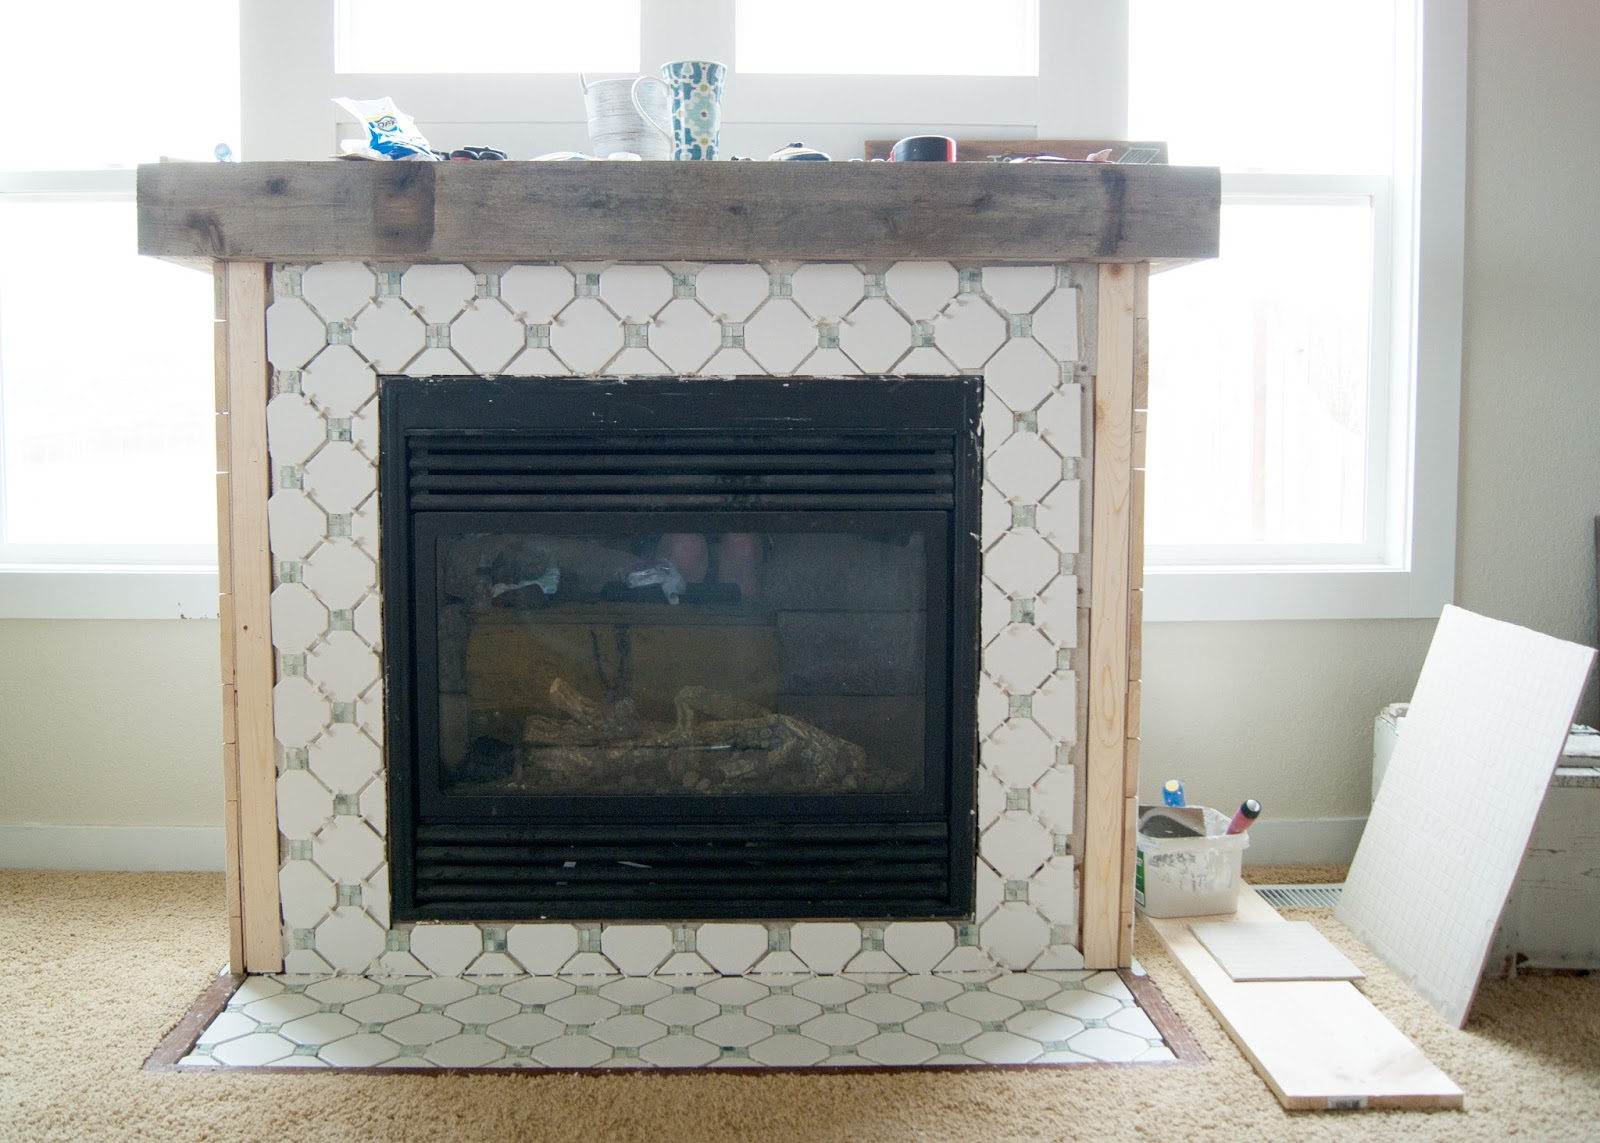 Vintage inspired fireplace makeover using yard sale tile laid in an octagon and dot pattern